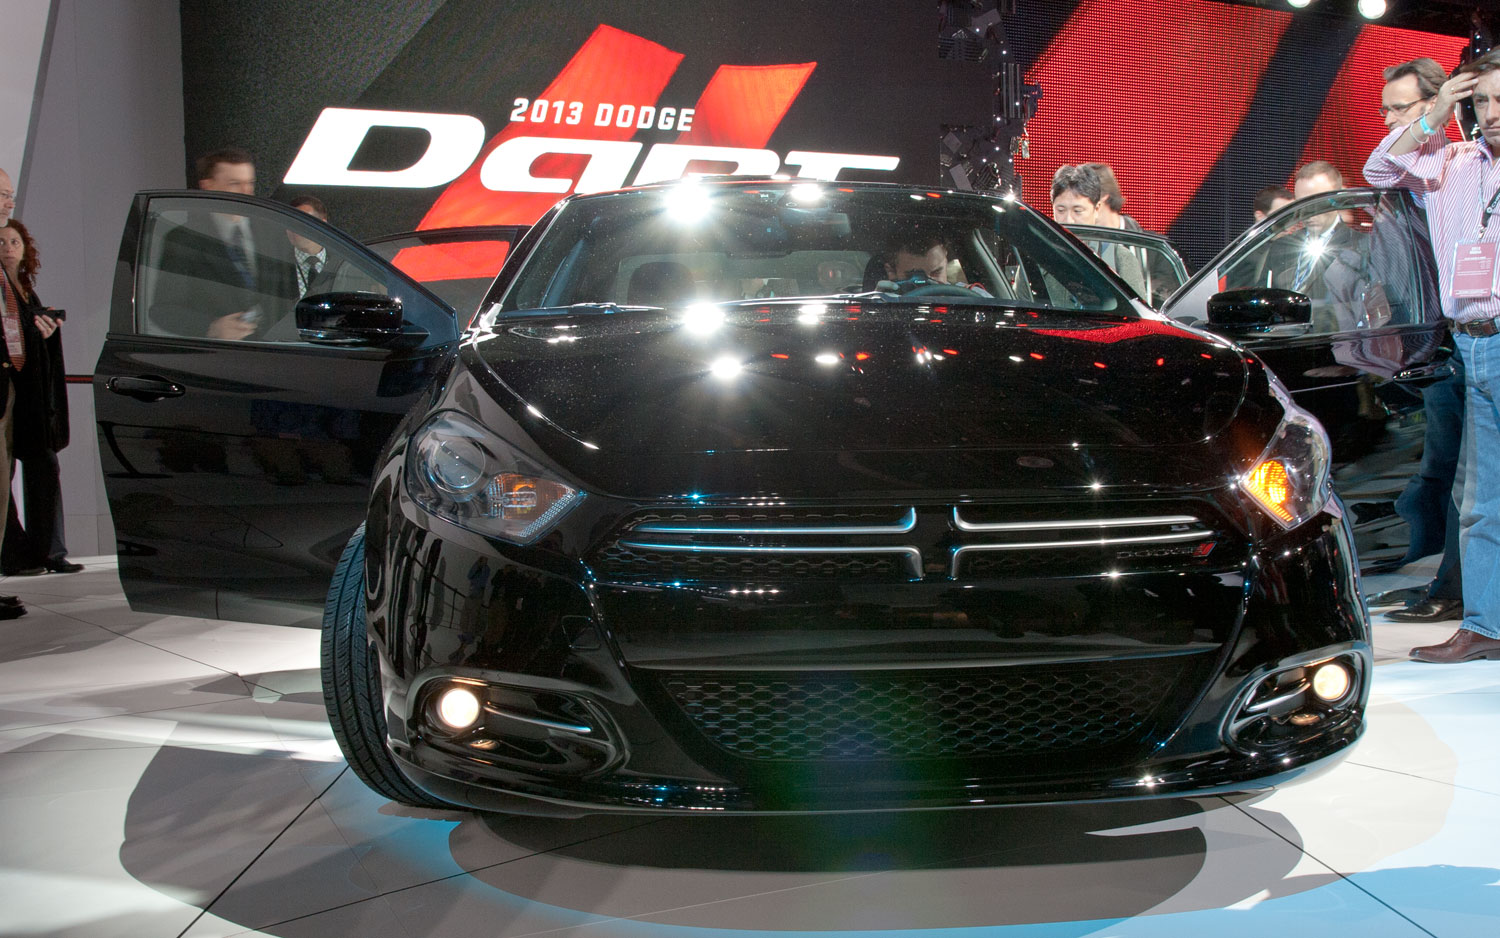 2013 Dodge Dart Front View1